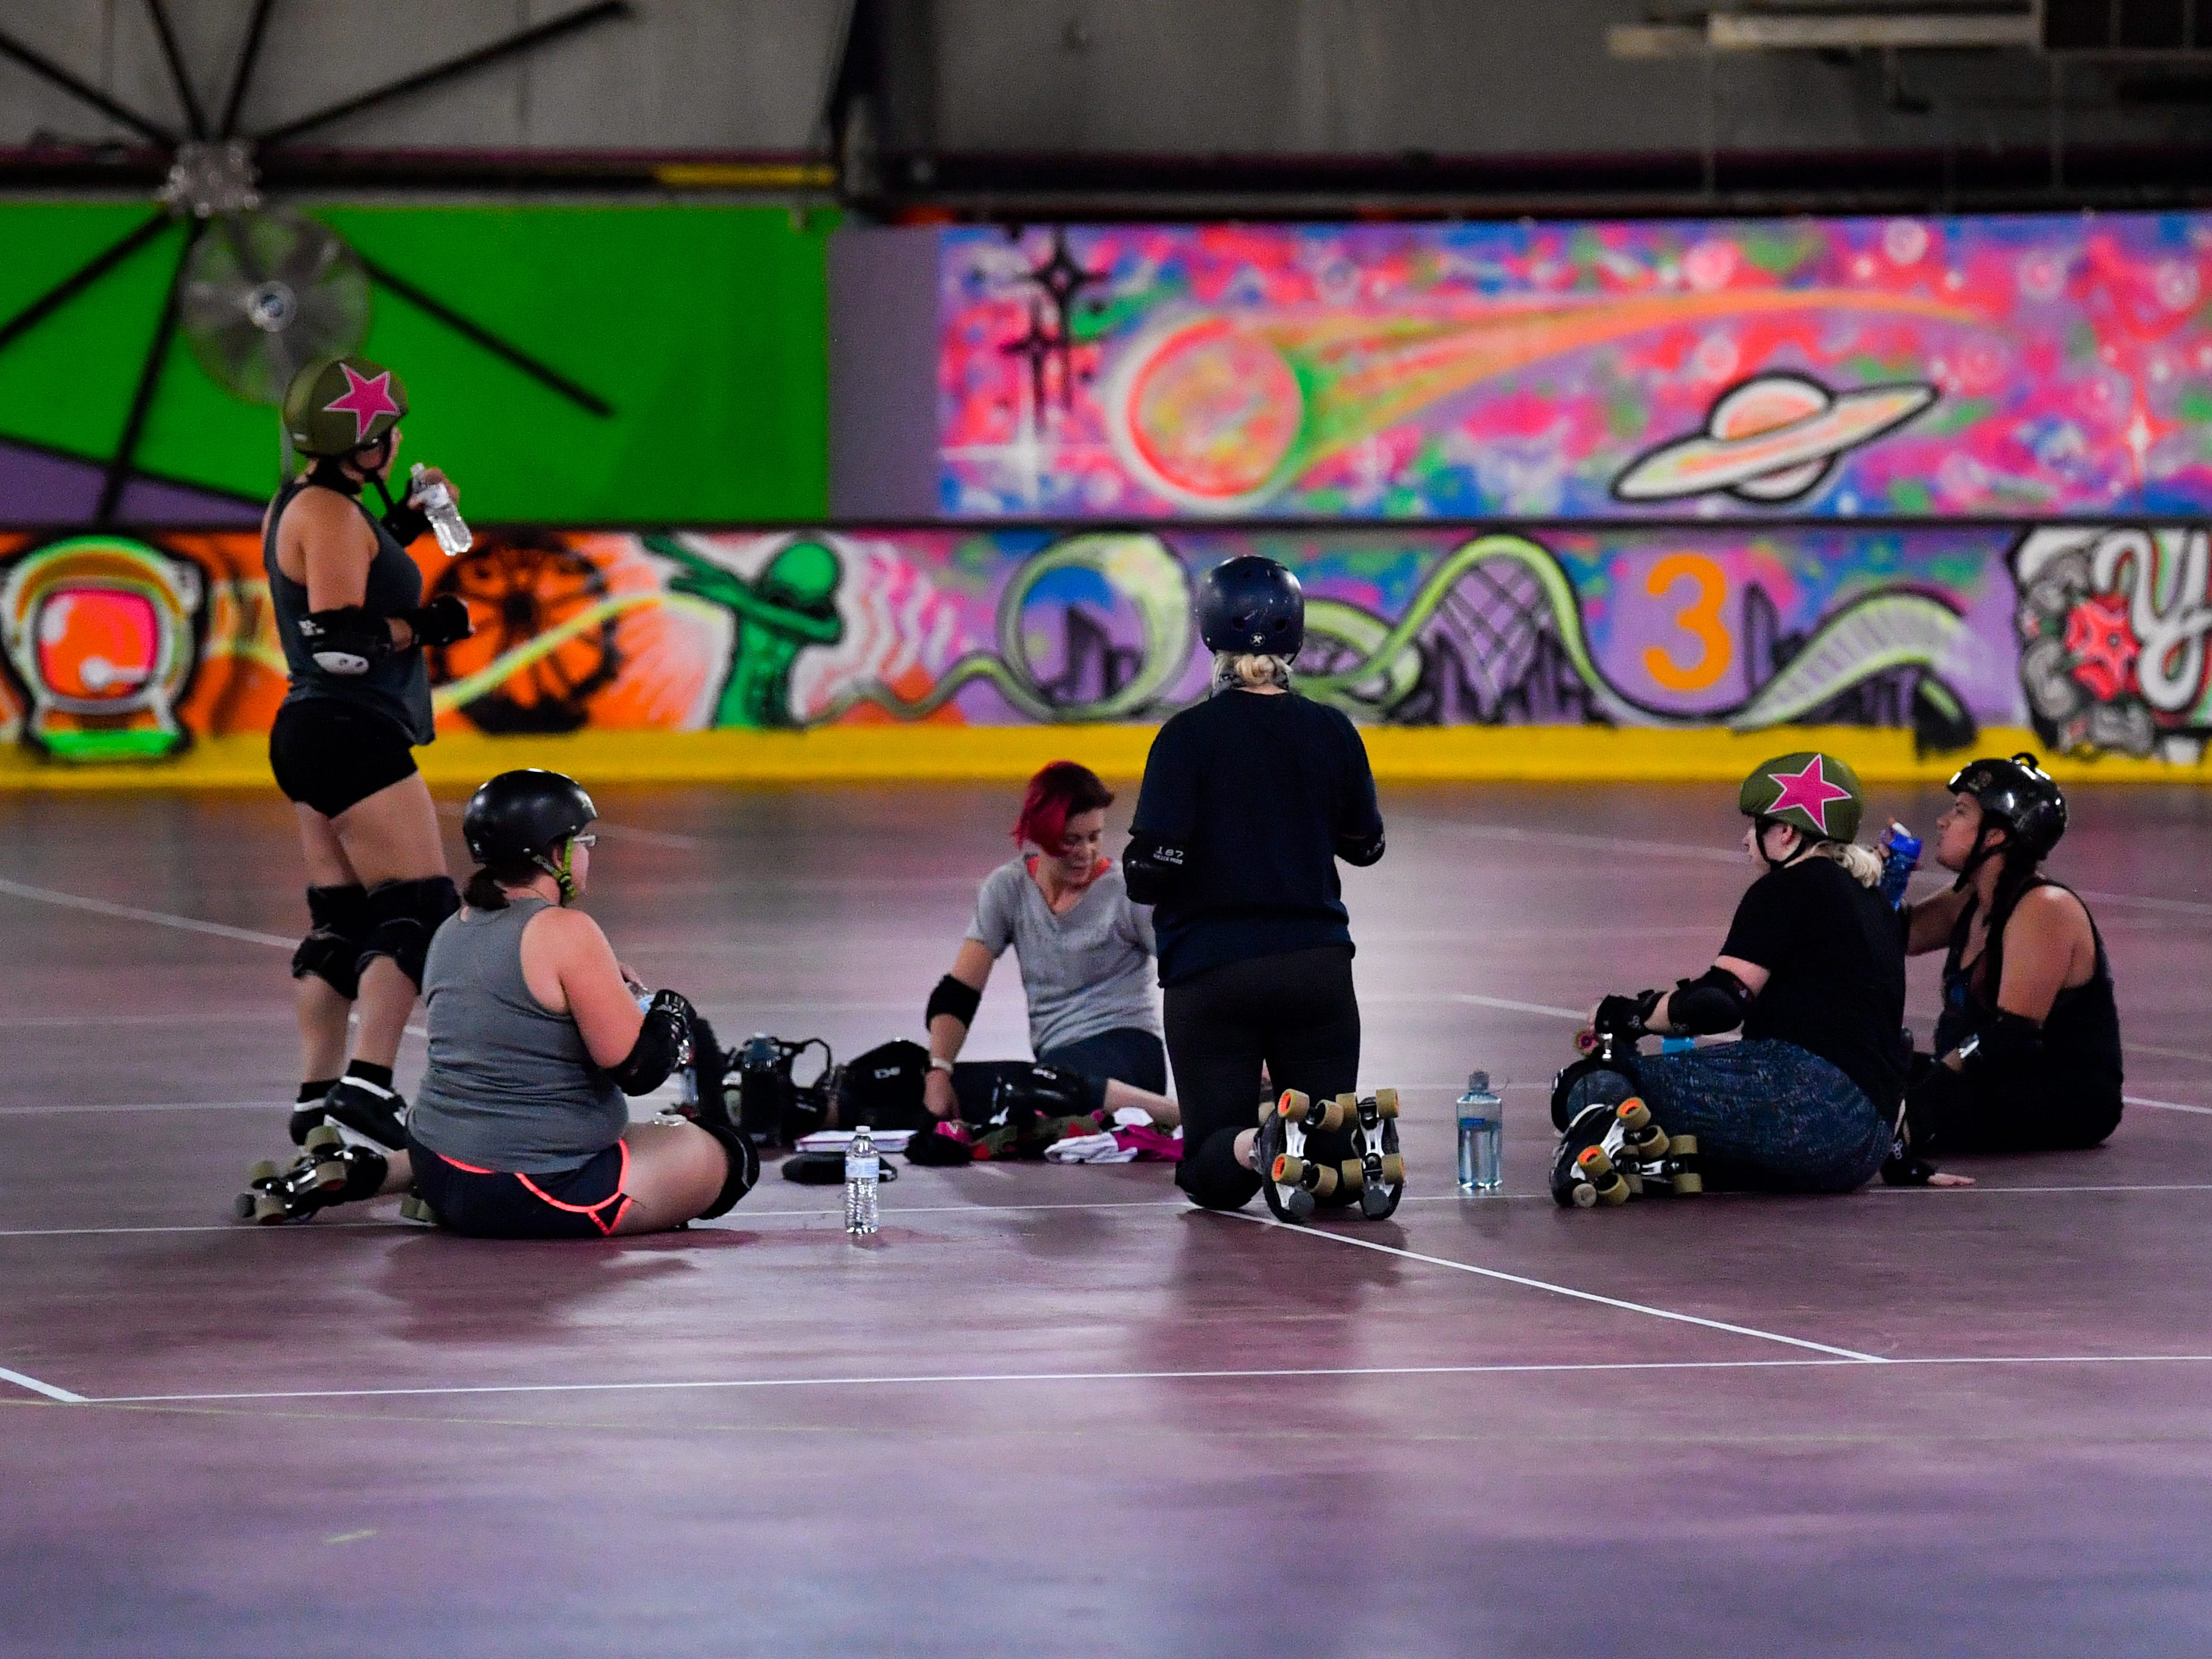 After a long and challenging practice, the Derby Dames convene in the middle of the rink for a water break before heading home, Thursday, October 18, 2018.